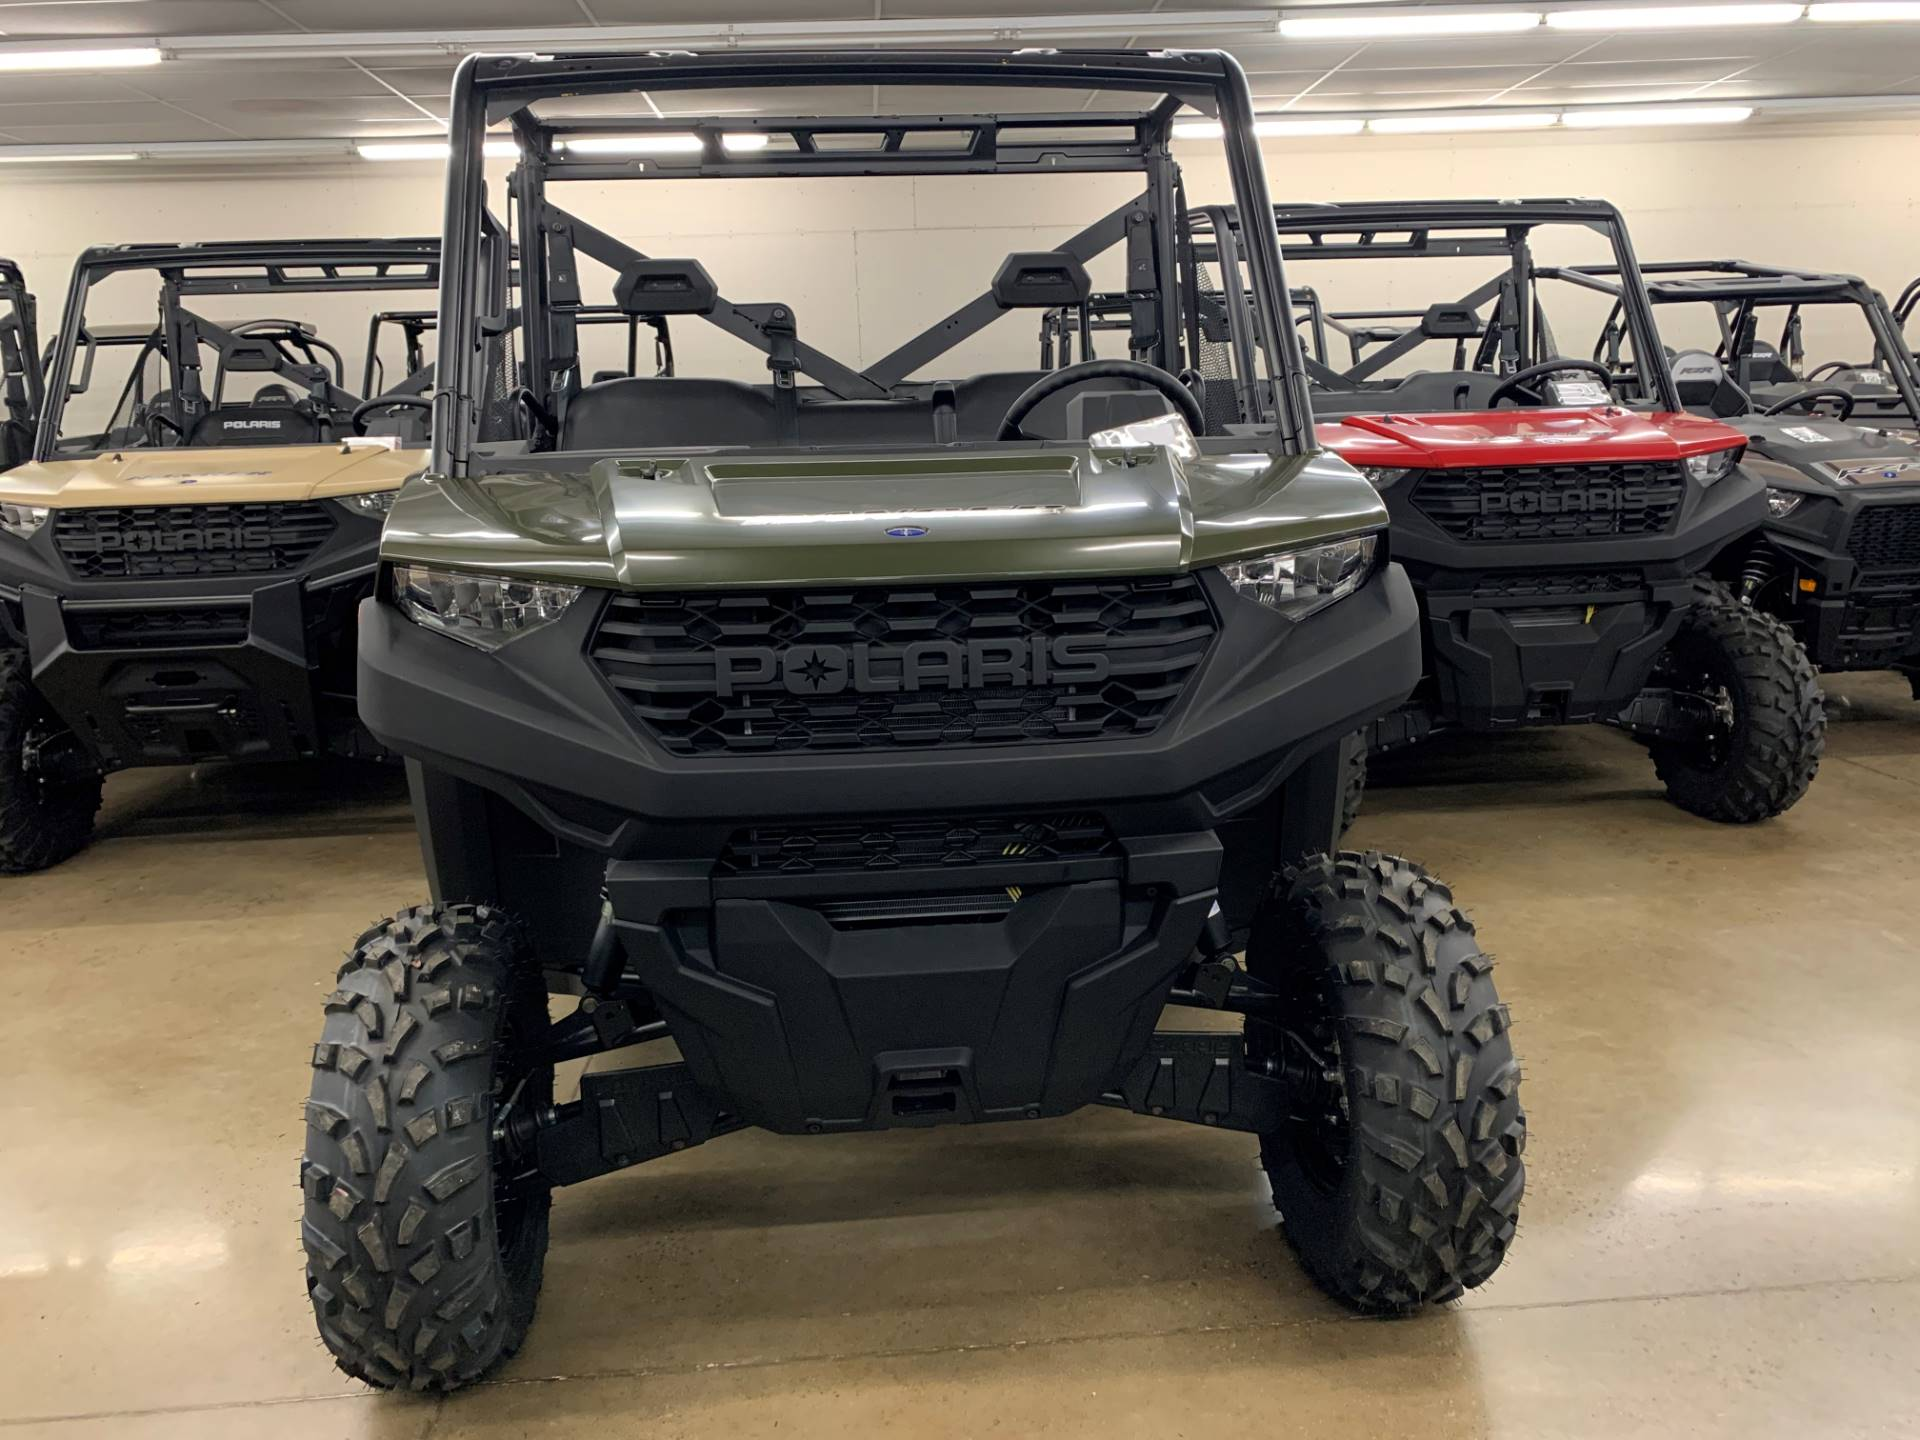 2020 Polaris Ranger 1000 in Chicora, Pennsylvania - Photo 9